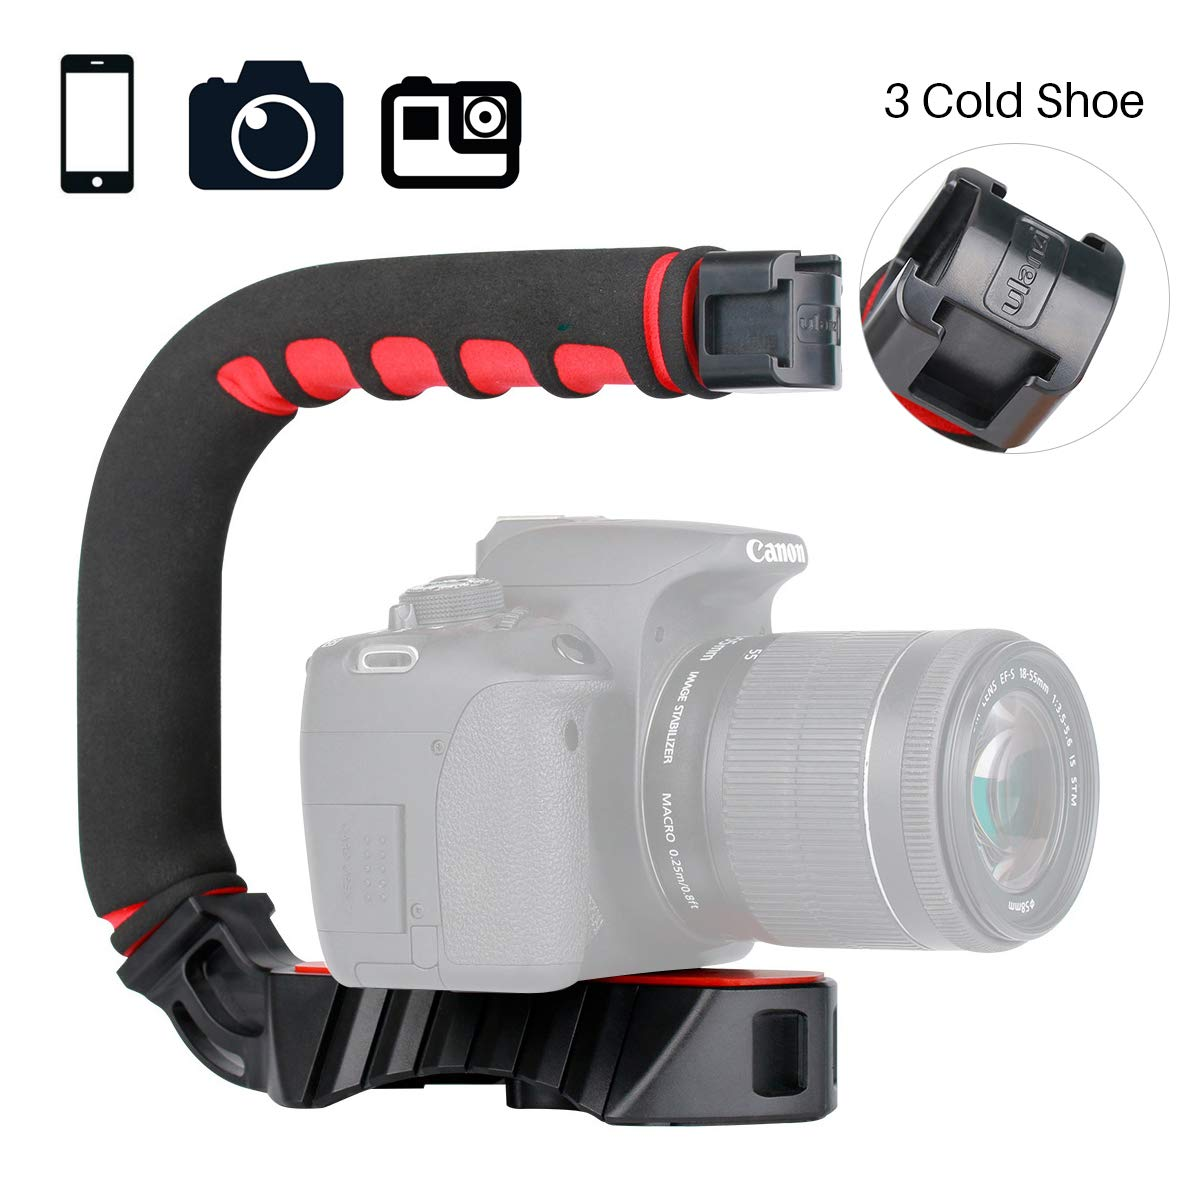 ULANZI U-Grip Pro Handheld Video Rig Steadicam with Triple Cold Shoe, Stabilizing Handle Grip Compatible for iPhone Xs 8 7plus GoPro 7 6 5 Canon NikonSony DSLR Cameras by ULANZI